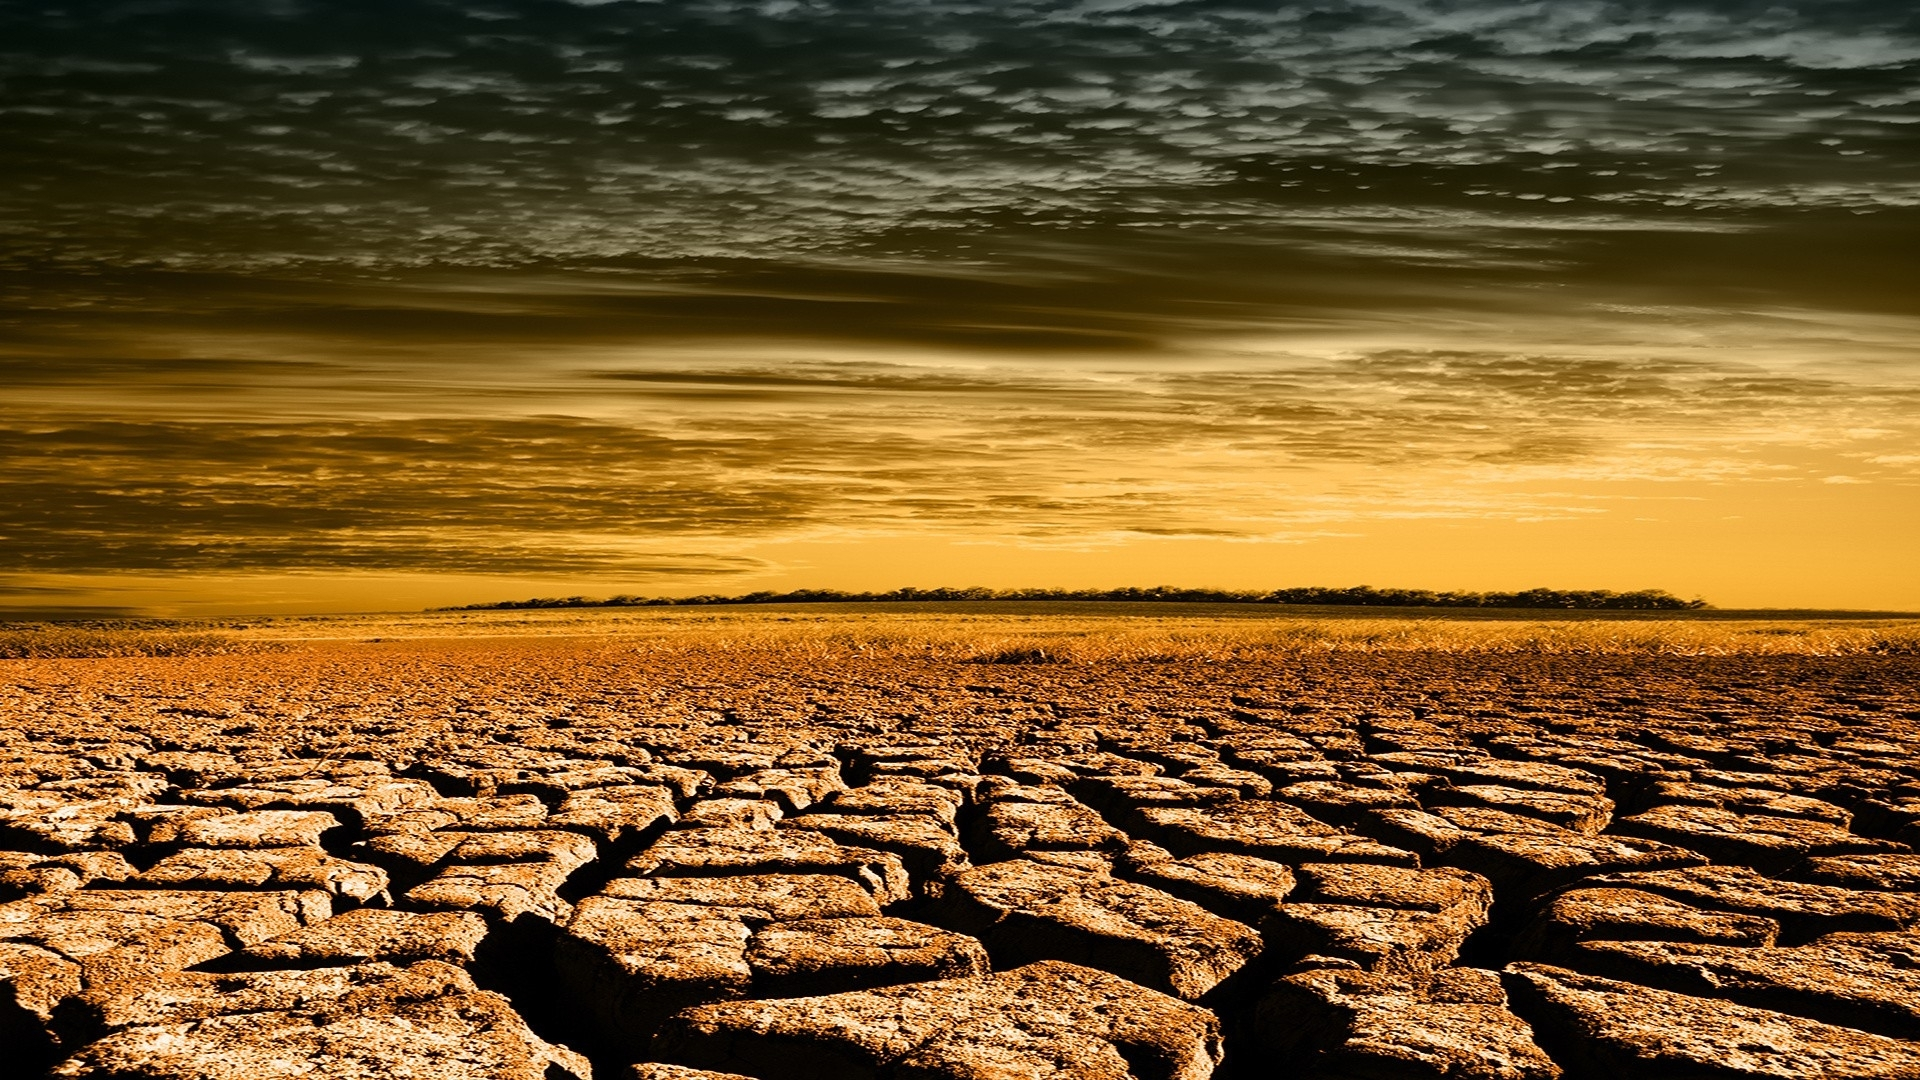 Drought Cracked Fields HD wallpapers